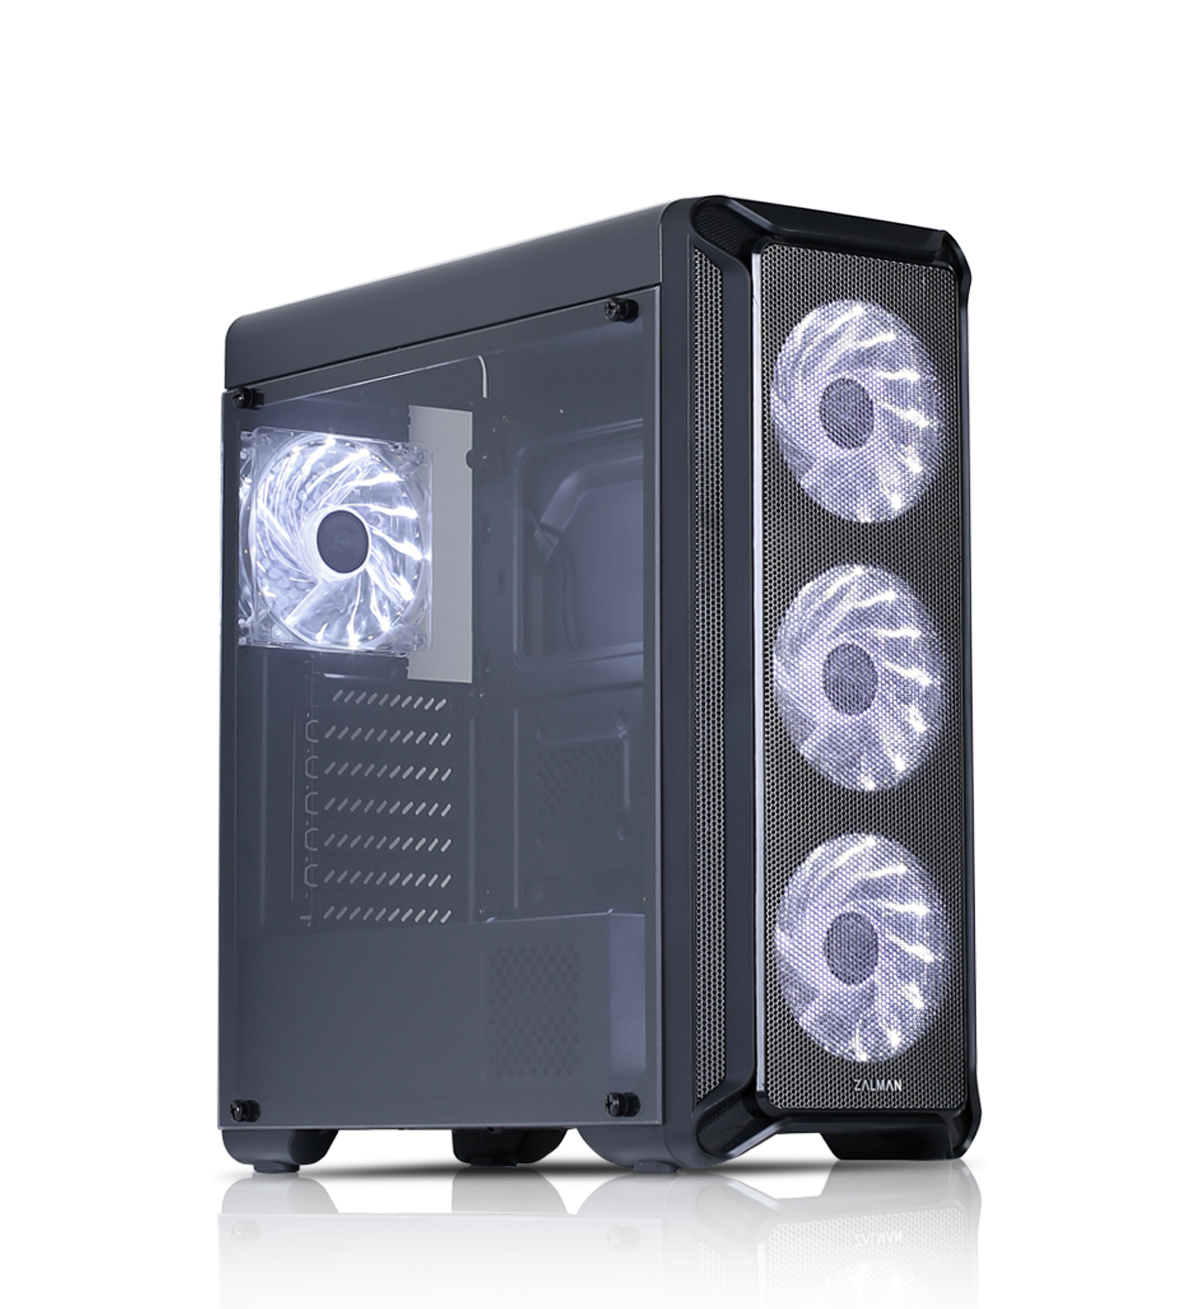 Zalman I3 ATX Mid Tower PC Case, Mesh front for efficient cooling, Pre-installed fan: 3 x 120mm white LED front, 1 x 120mm white LED rear, 2 x 3.5, 3 x 2.5, Arcyl window left, 457(D) x 195(W) x 467(H)mm